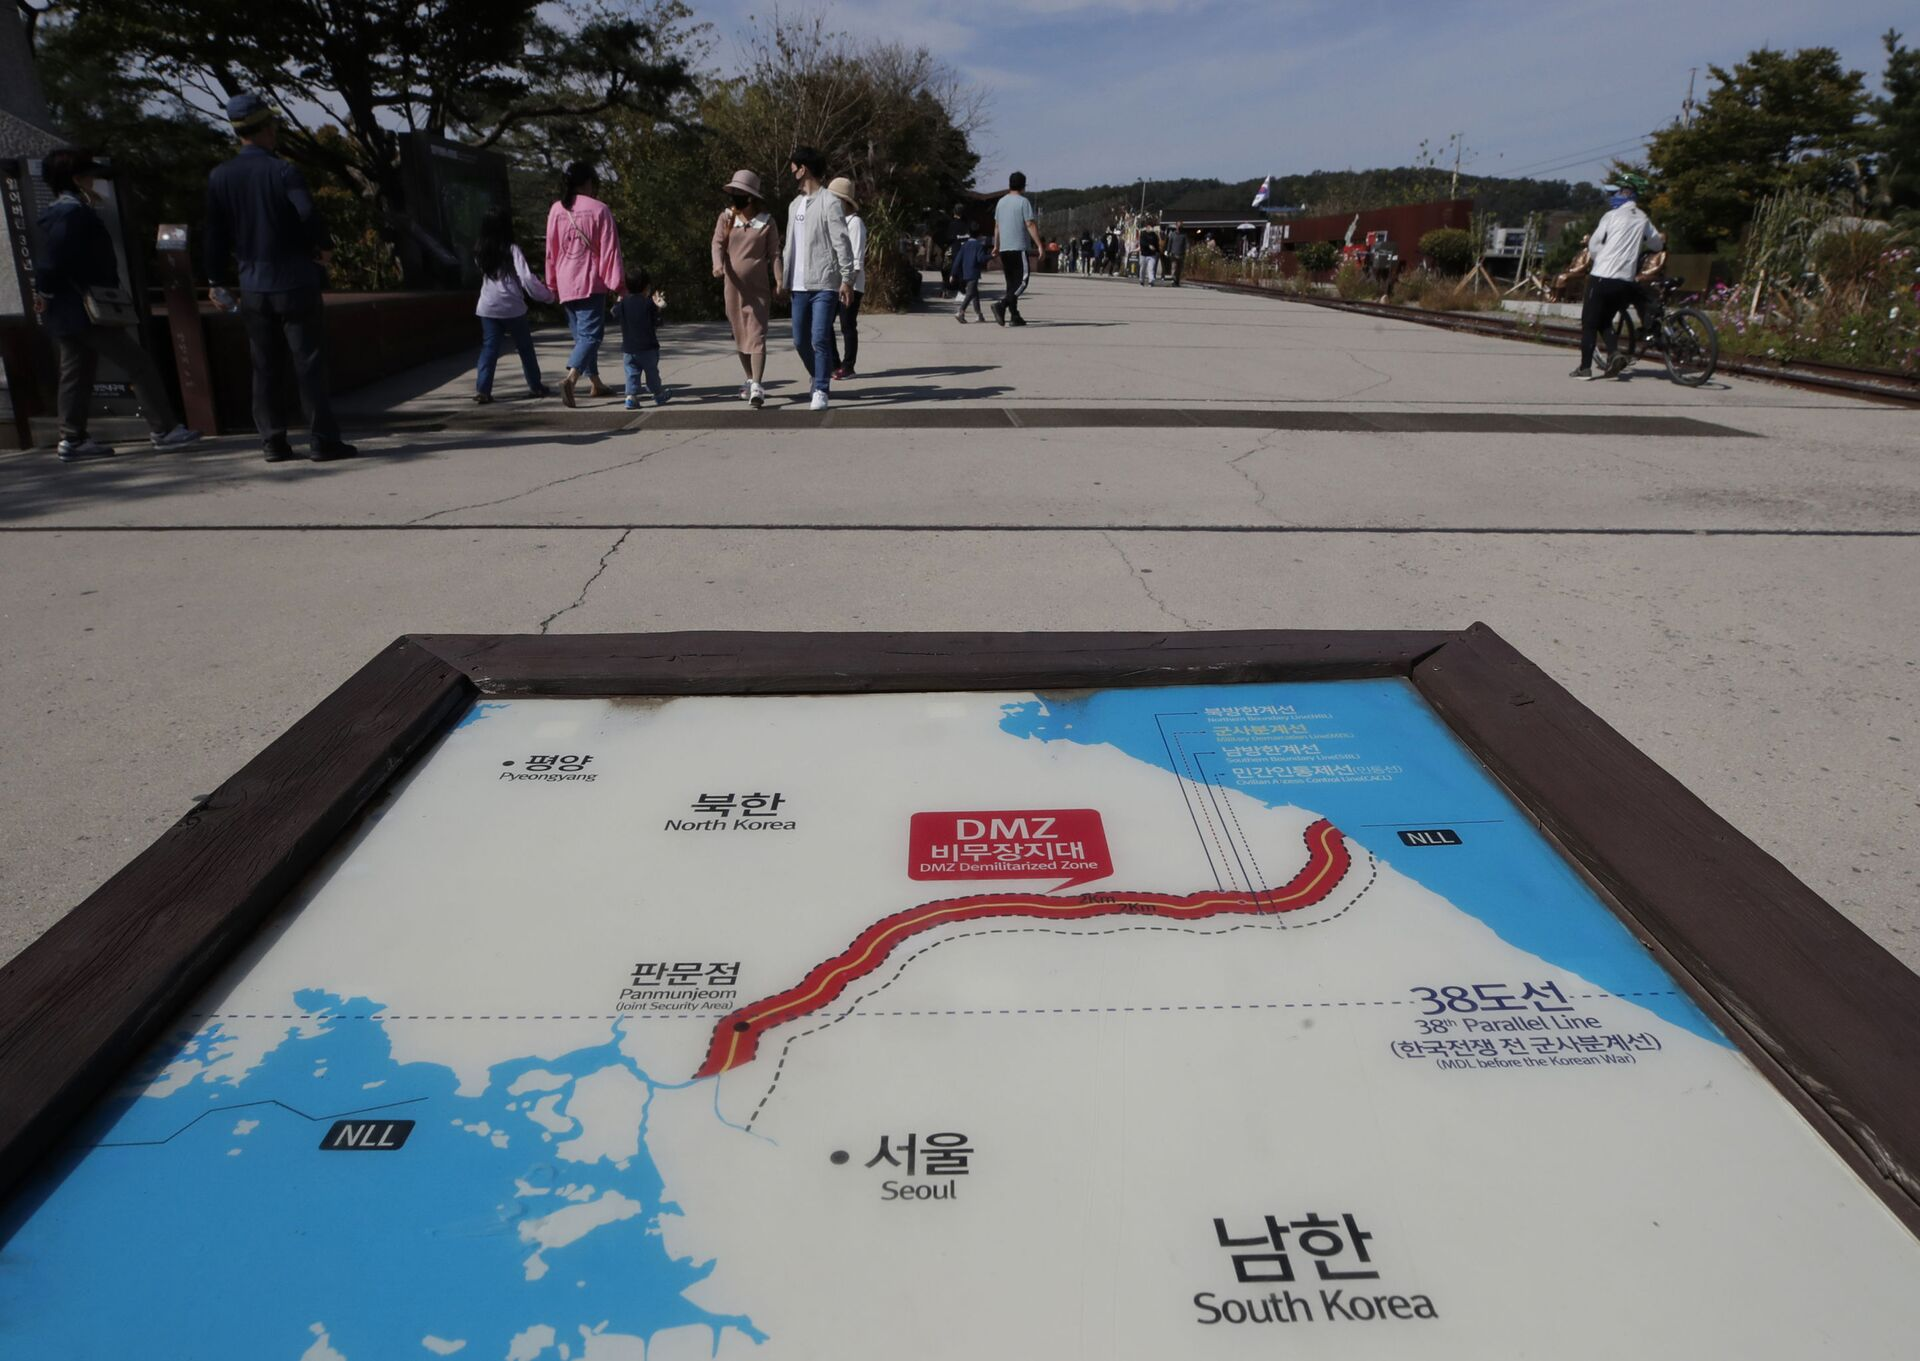 A map of two Koreas showing the Demilitarized Zone with North Korea's capital Pyongyang and South Korea's capital Seoul is seen at the Imjingak Pavilion in Paju, South Korea, Sunday, Oct. 11, 2020 - Sputnik International, 1920, 07.09.2021